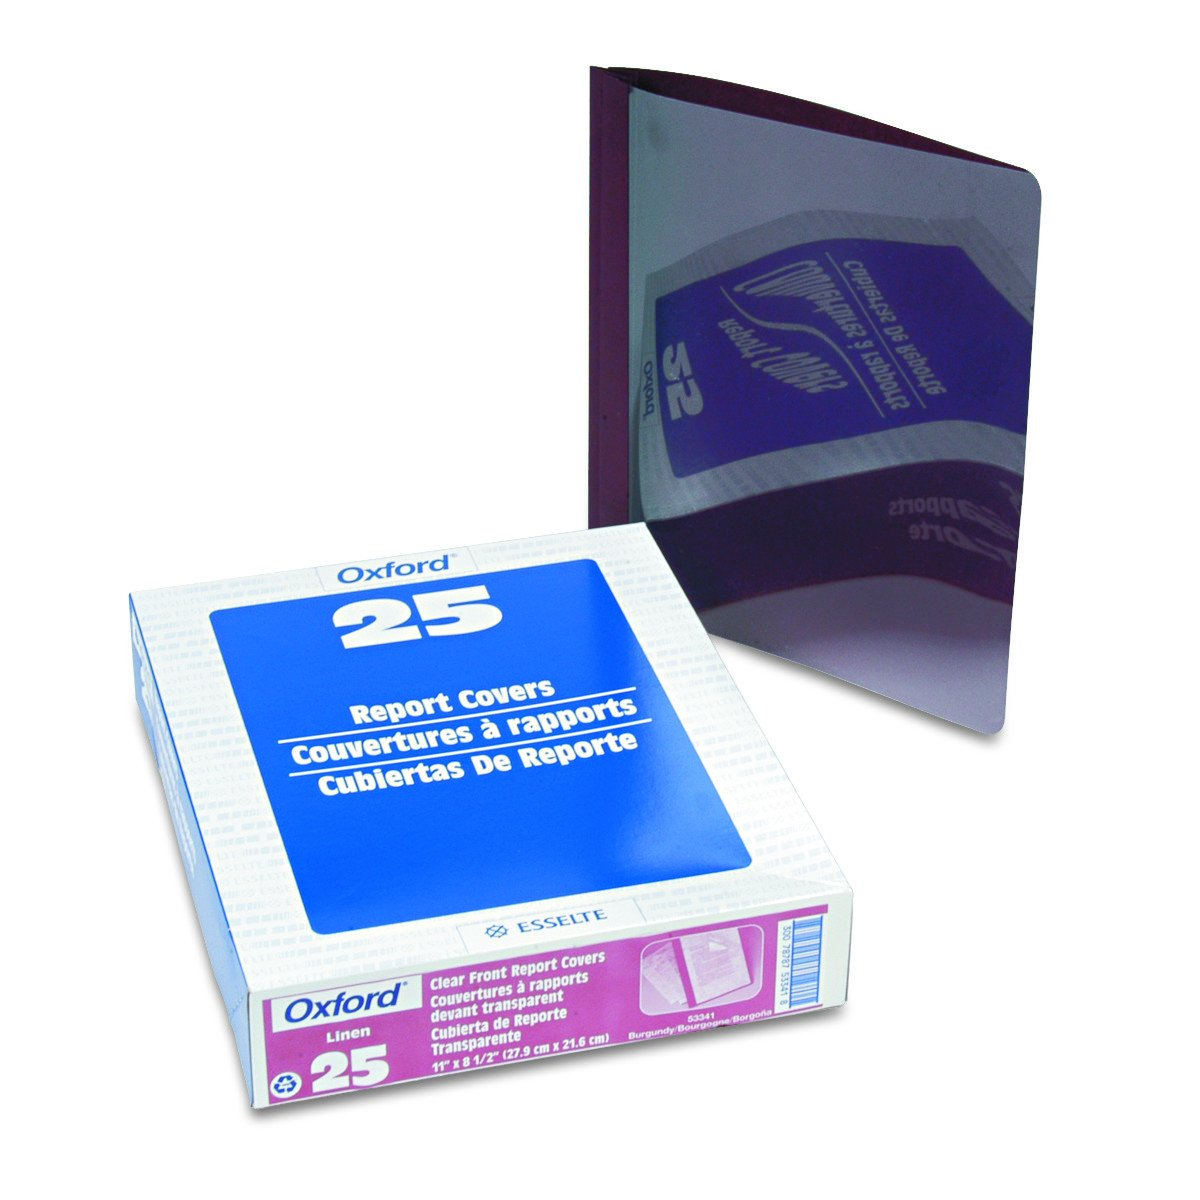 Oxford 53341 Clear Front Report Cover, 3-Prong, 1/2 Capacity, Burgundy Back Cover, 25/box